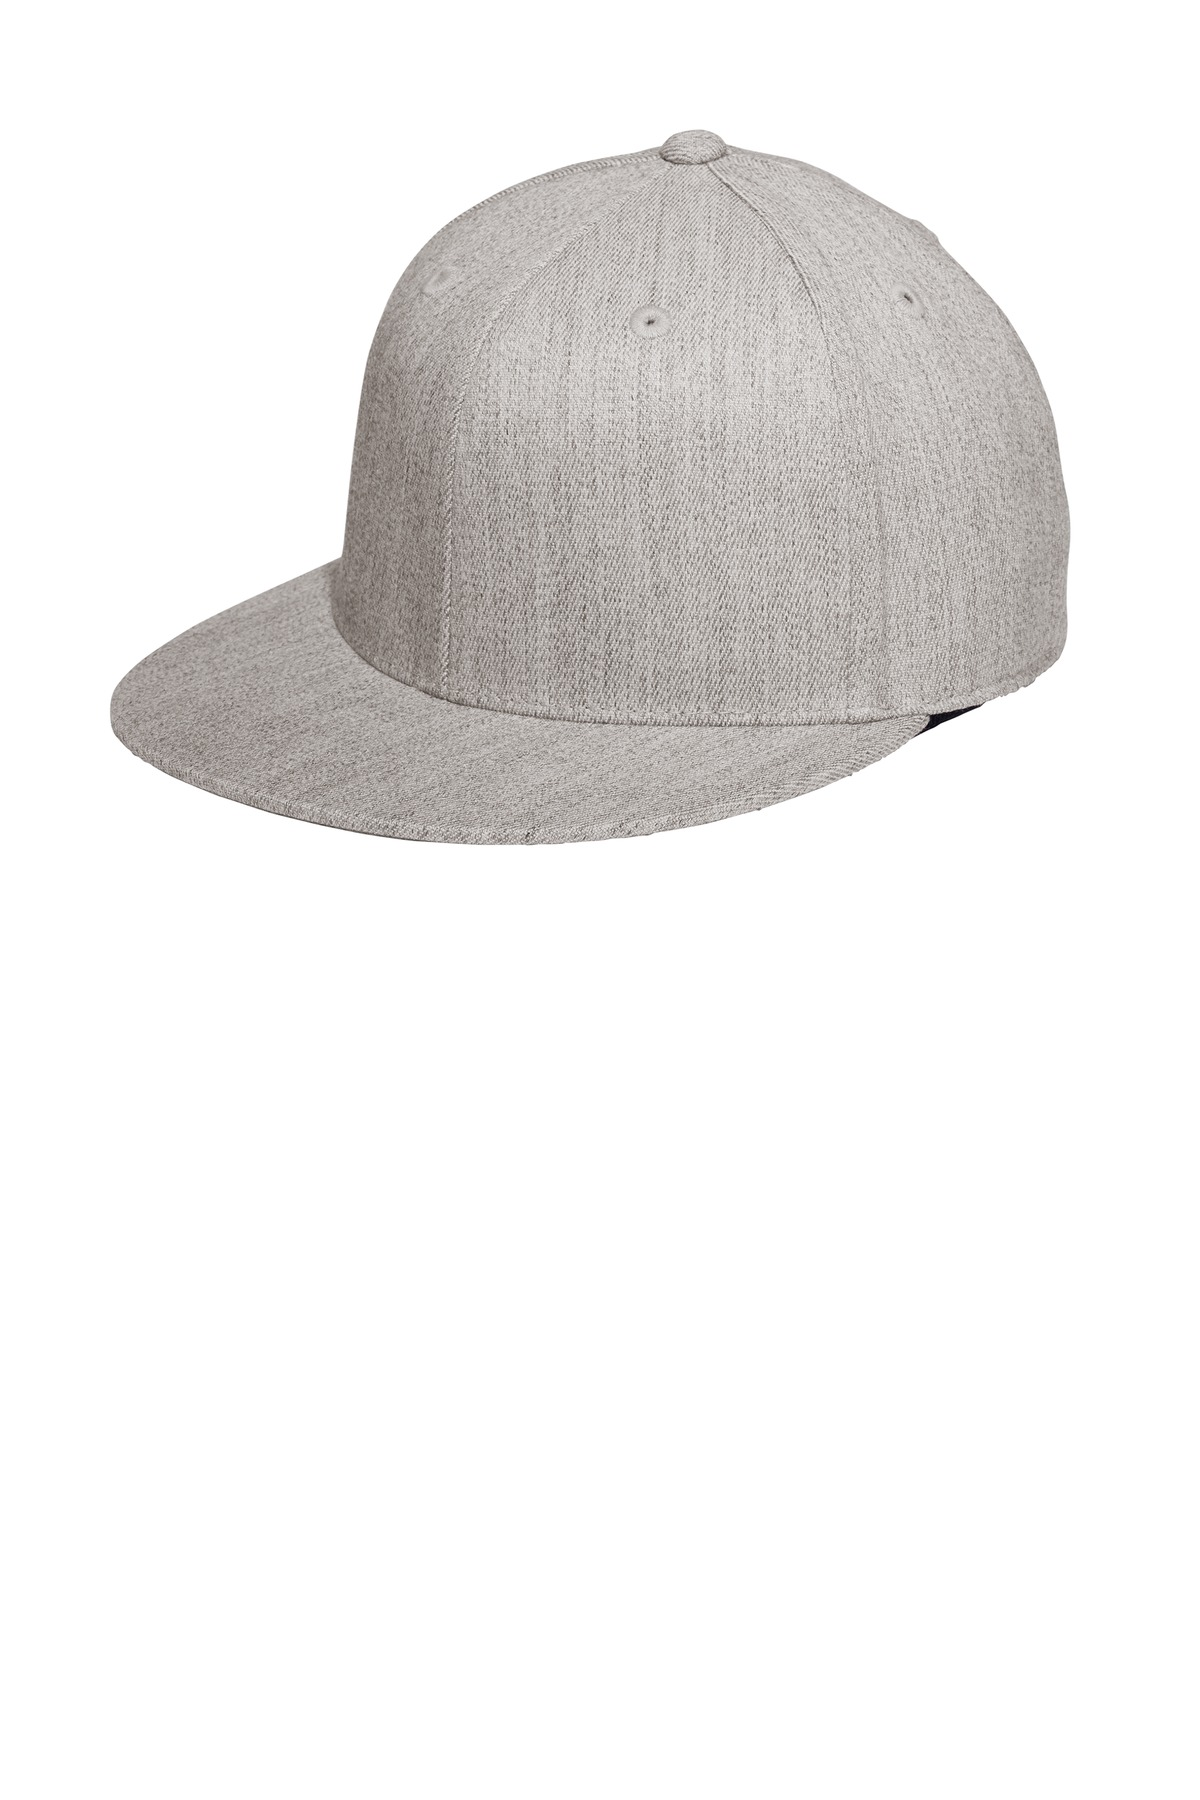 Port Authority ®  Flexfit 210 ®  Flat Bill Cap. C808 - Heather Grey